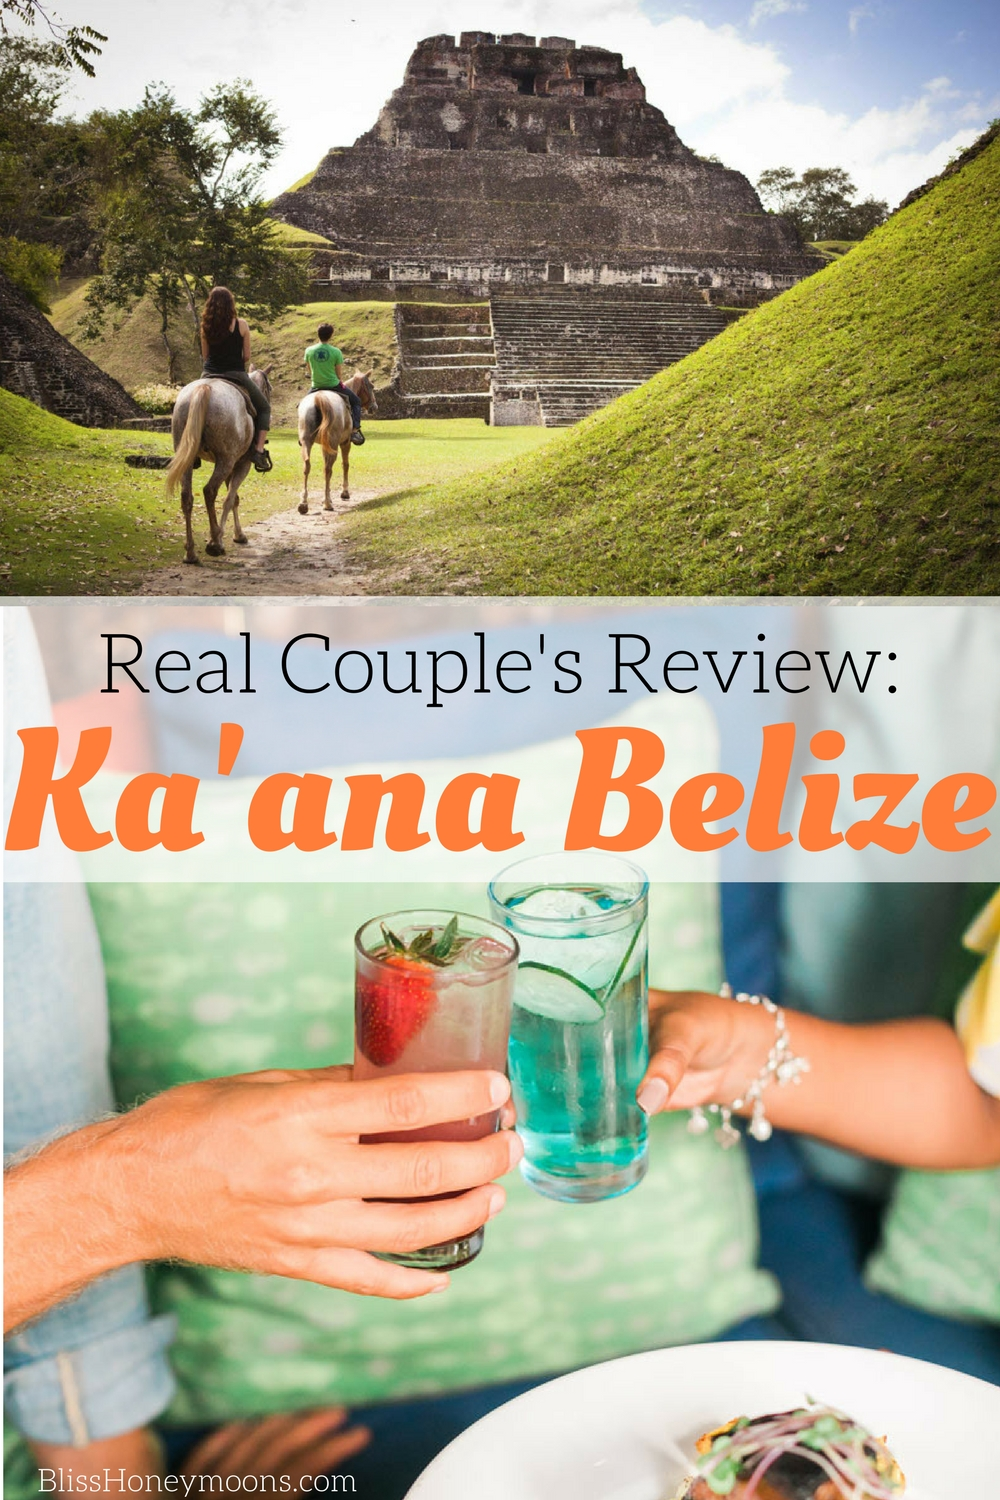 Ka'ana Belize review